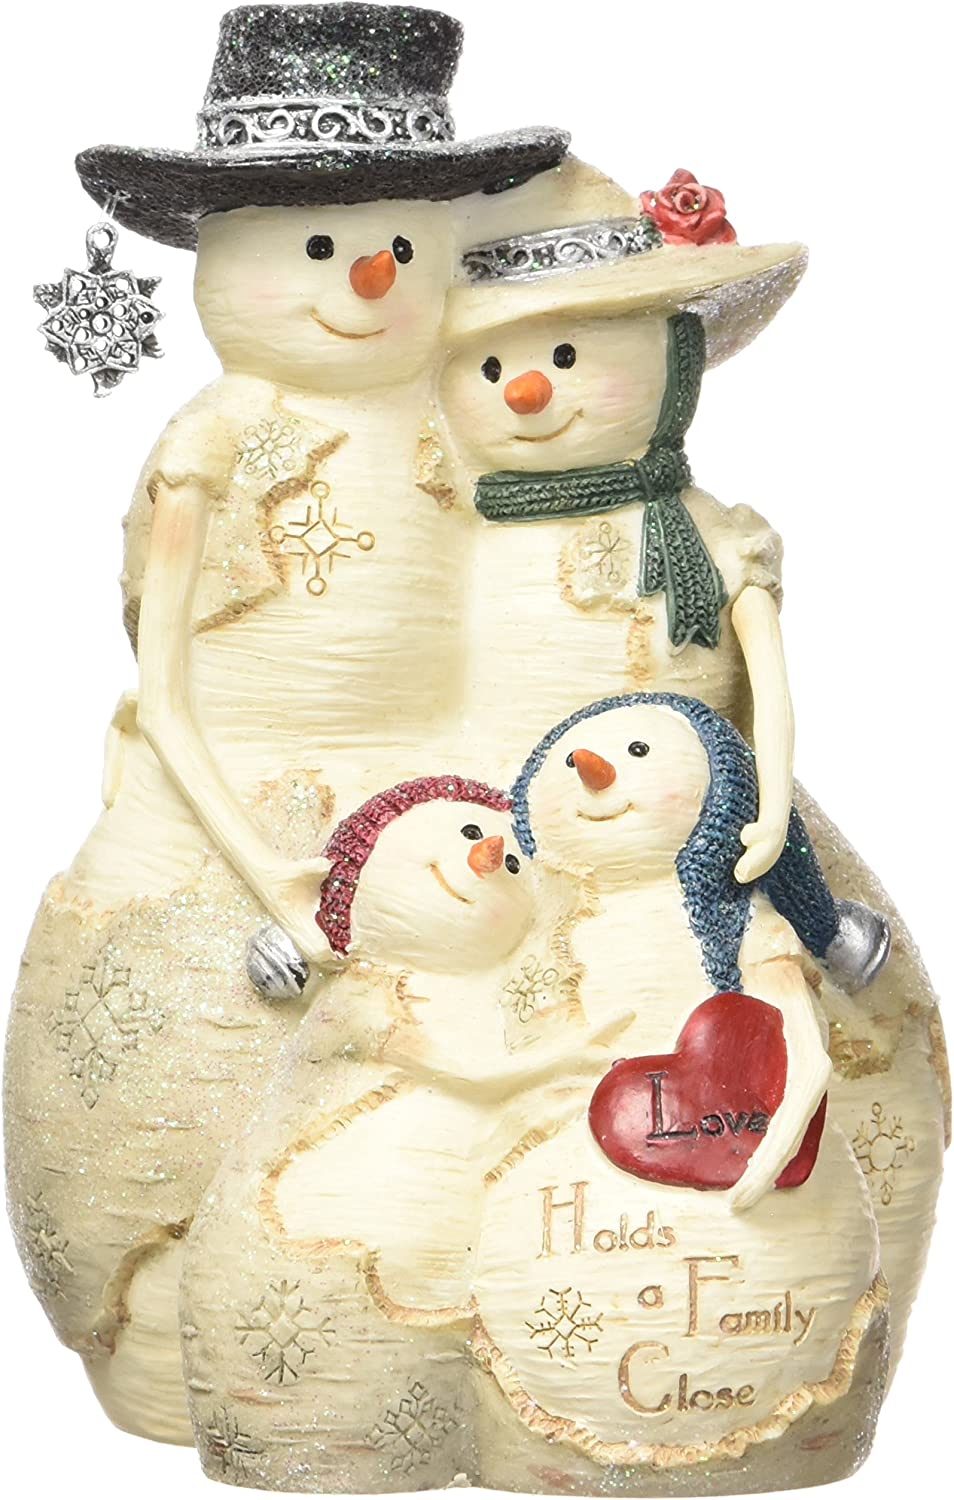 Pavilion Gift Company BirchHeart 5-Inch Tall Snowman Family, Reads Love Holds a Family Close